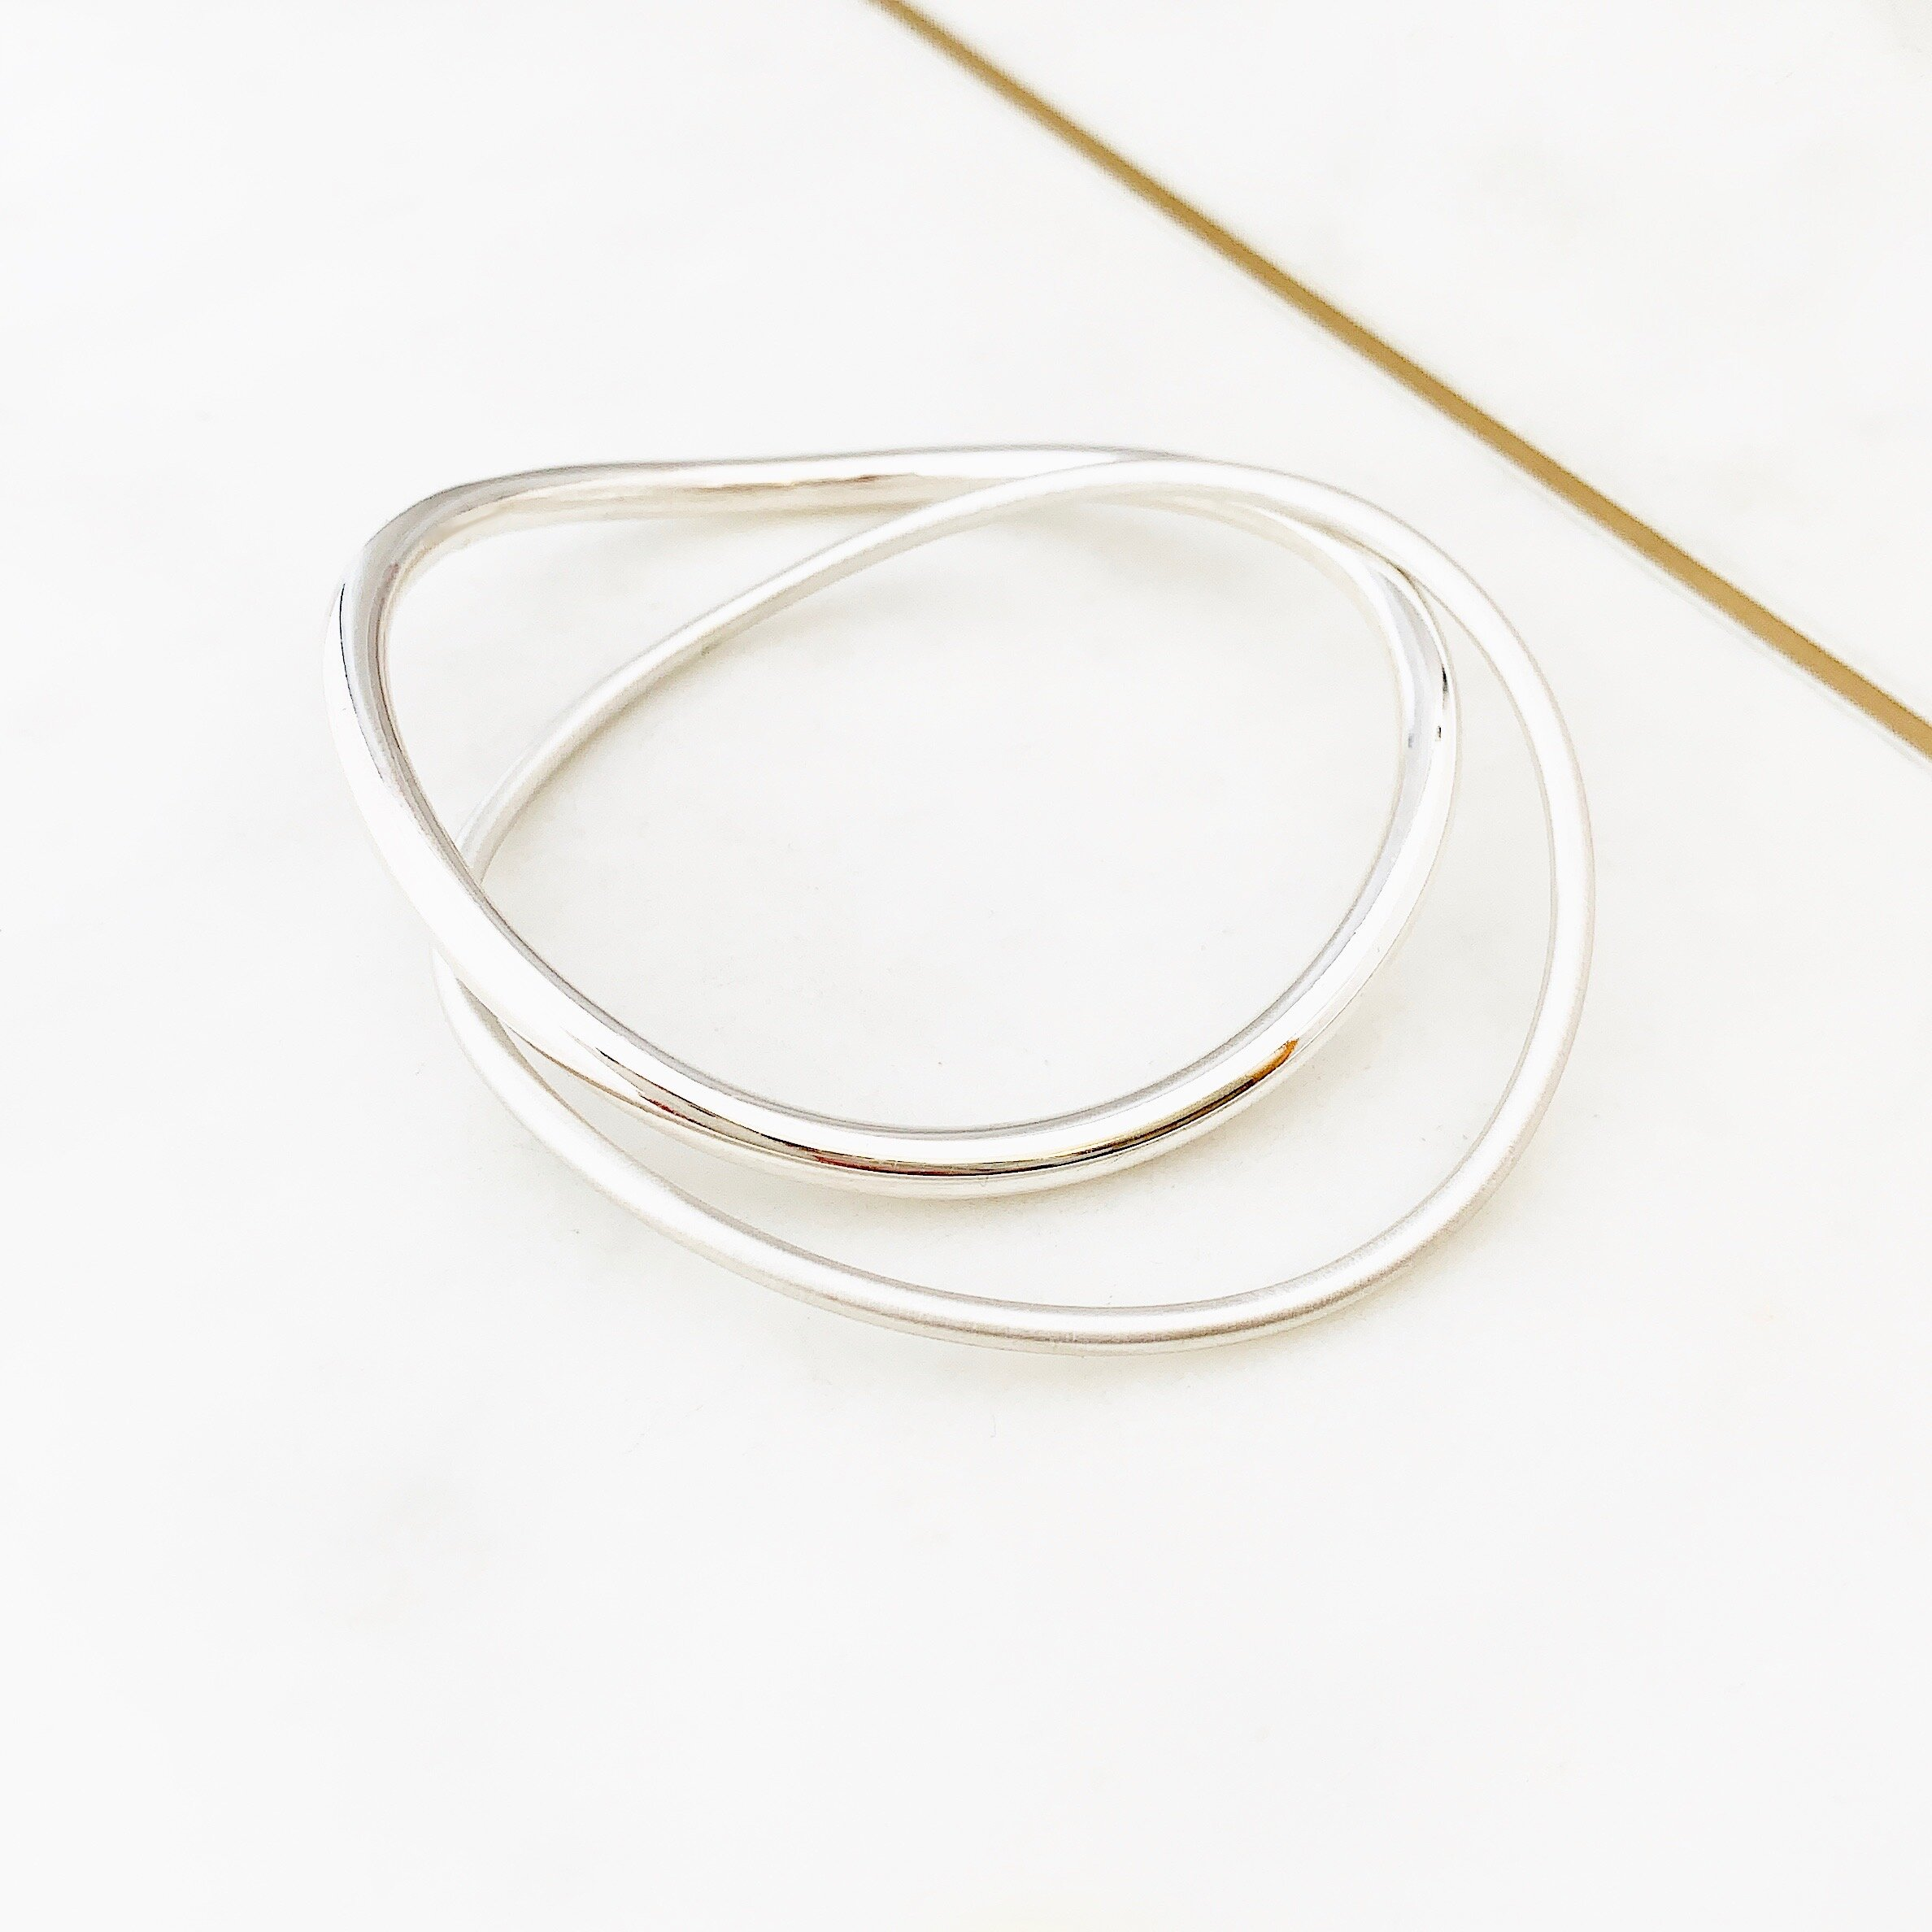 Details about  /dainty hammered bangle in sterling silver